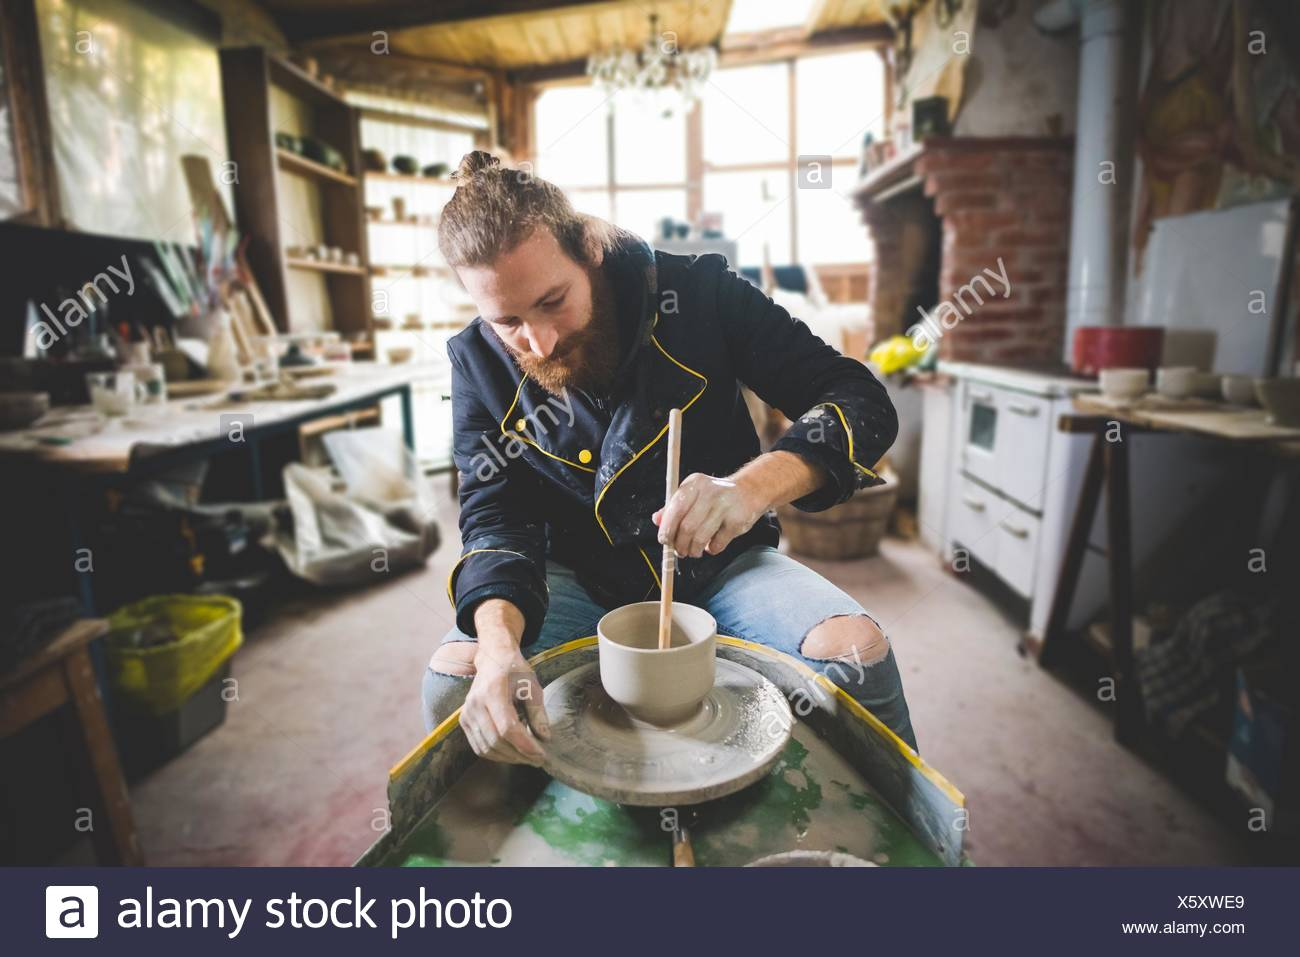 Bearded mid adult man in workshop sitting at pottery wheel using diddler to make clay pot - Stock Image